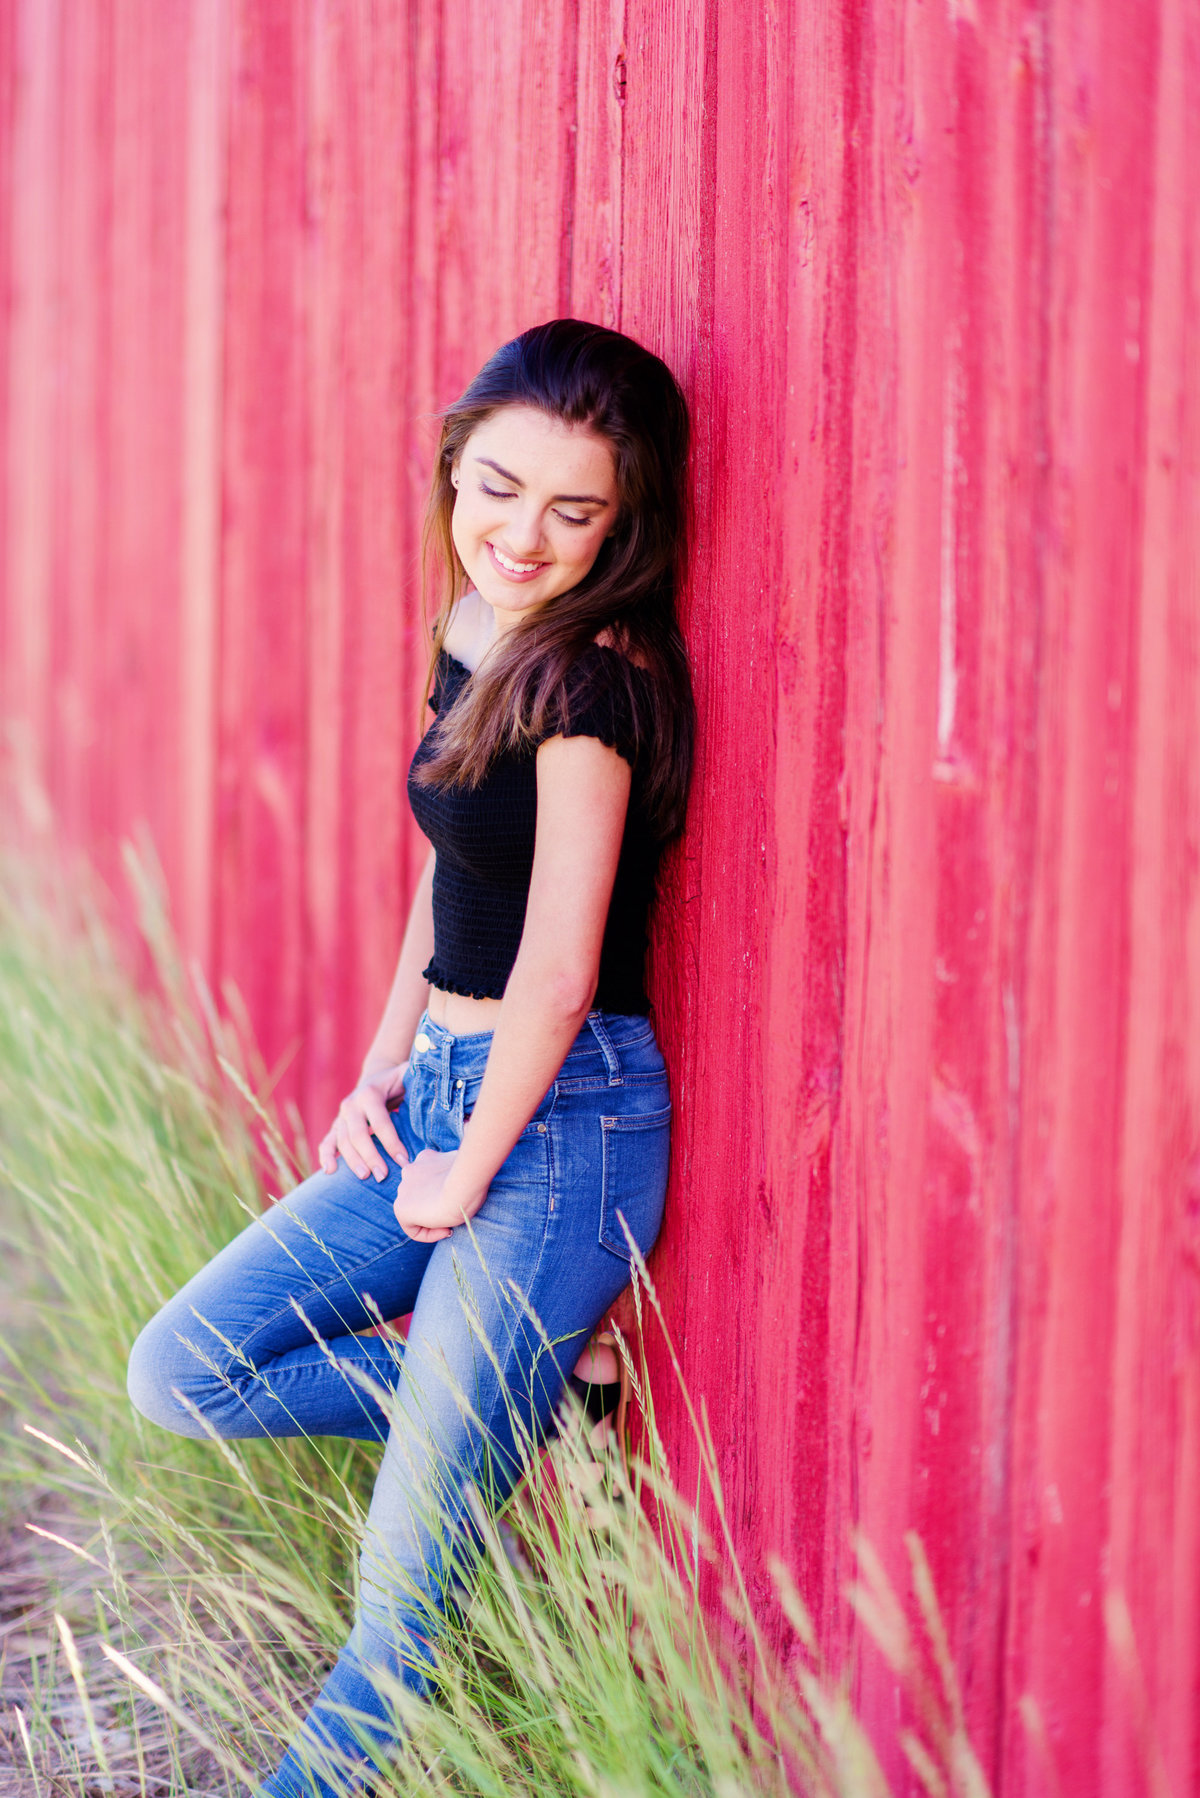 glen arbor senior portrait photographers